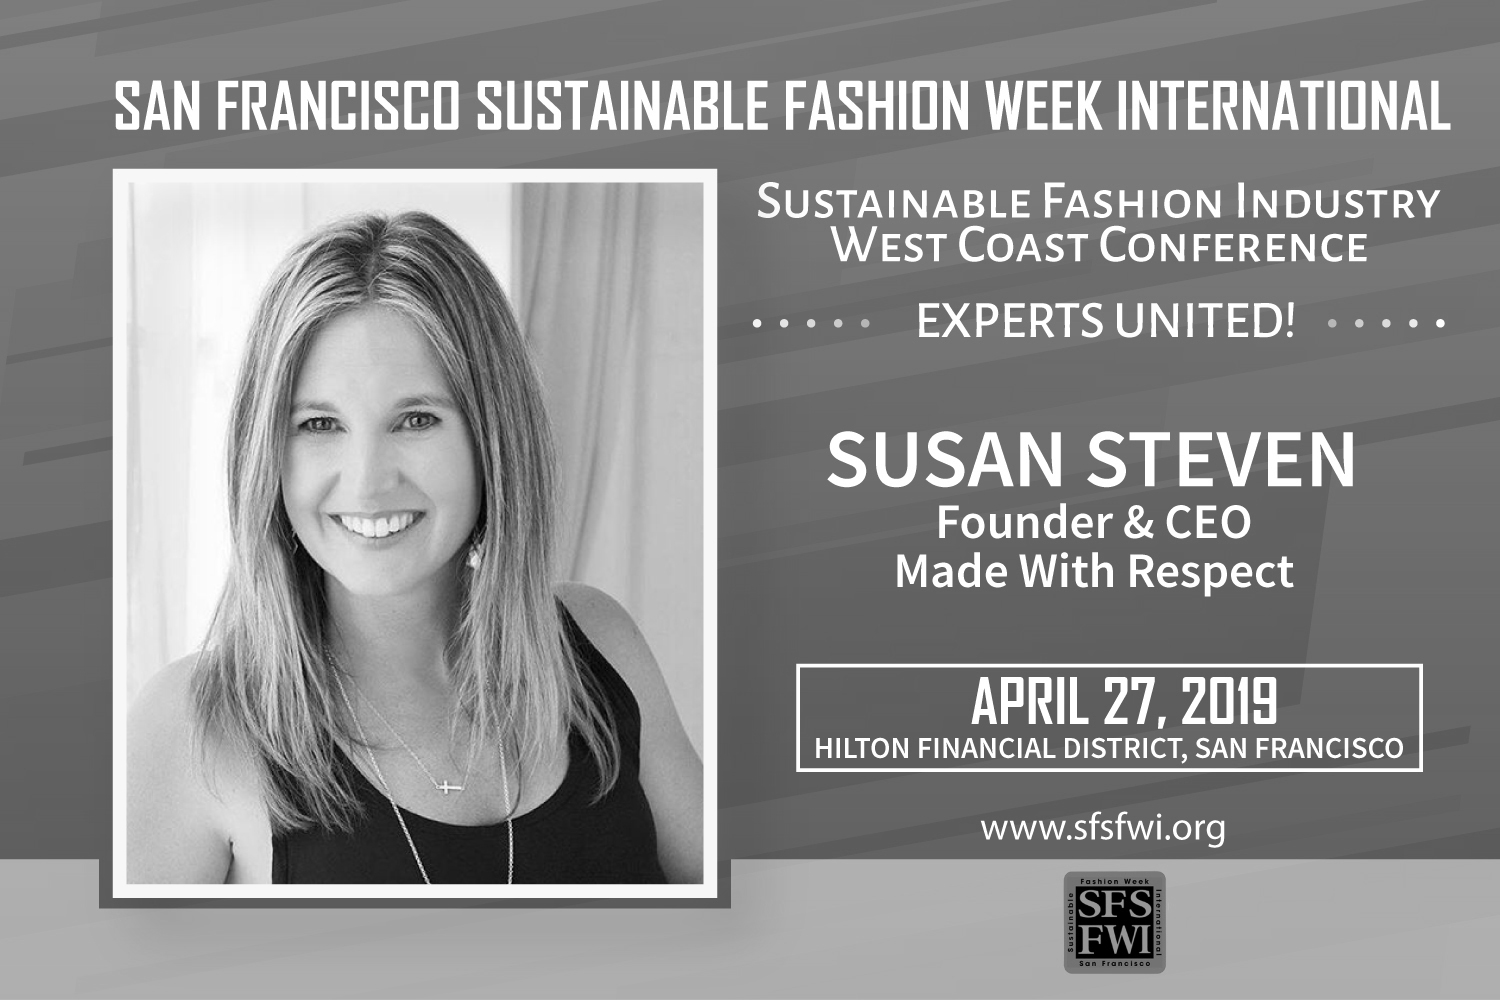 Susan-Steven-Founder-&-CEO-Made-With-Respect-B&W